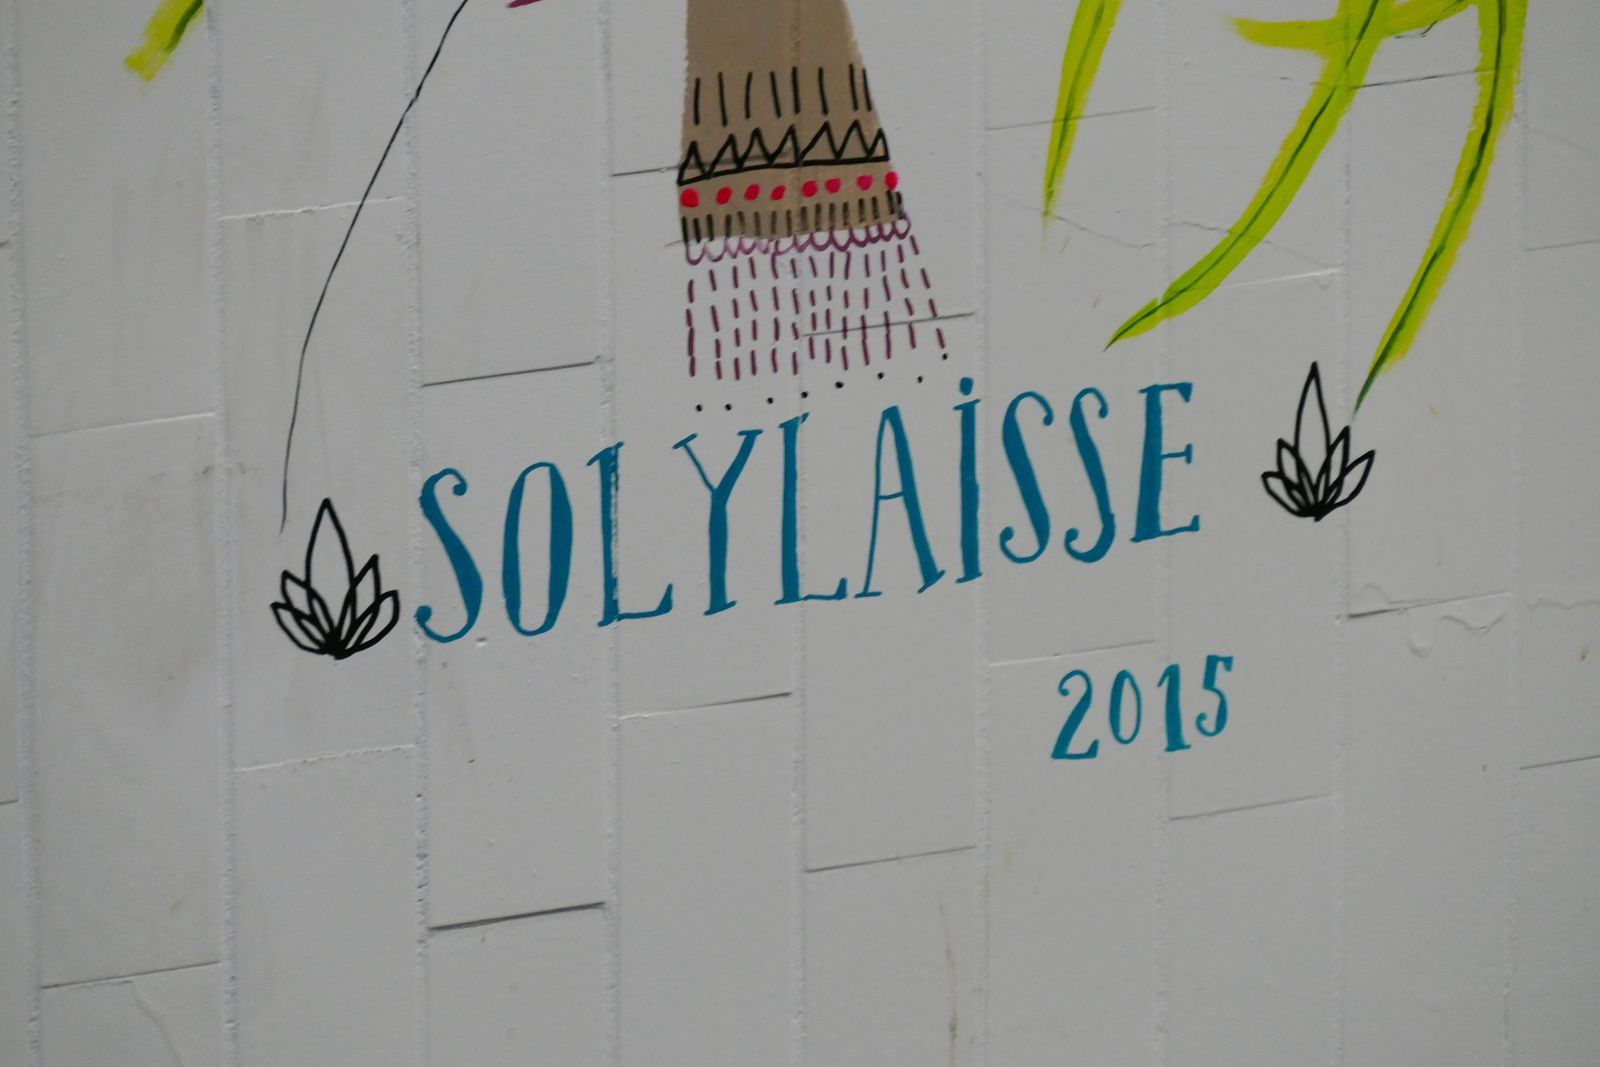 Oeuvre de Solulaisse - photos by Chry 8 juillet 2015